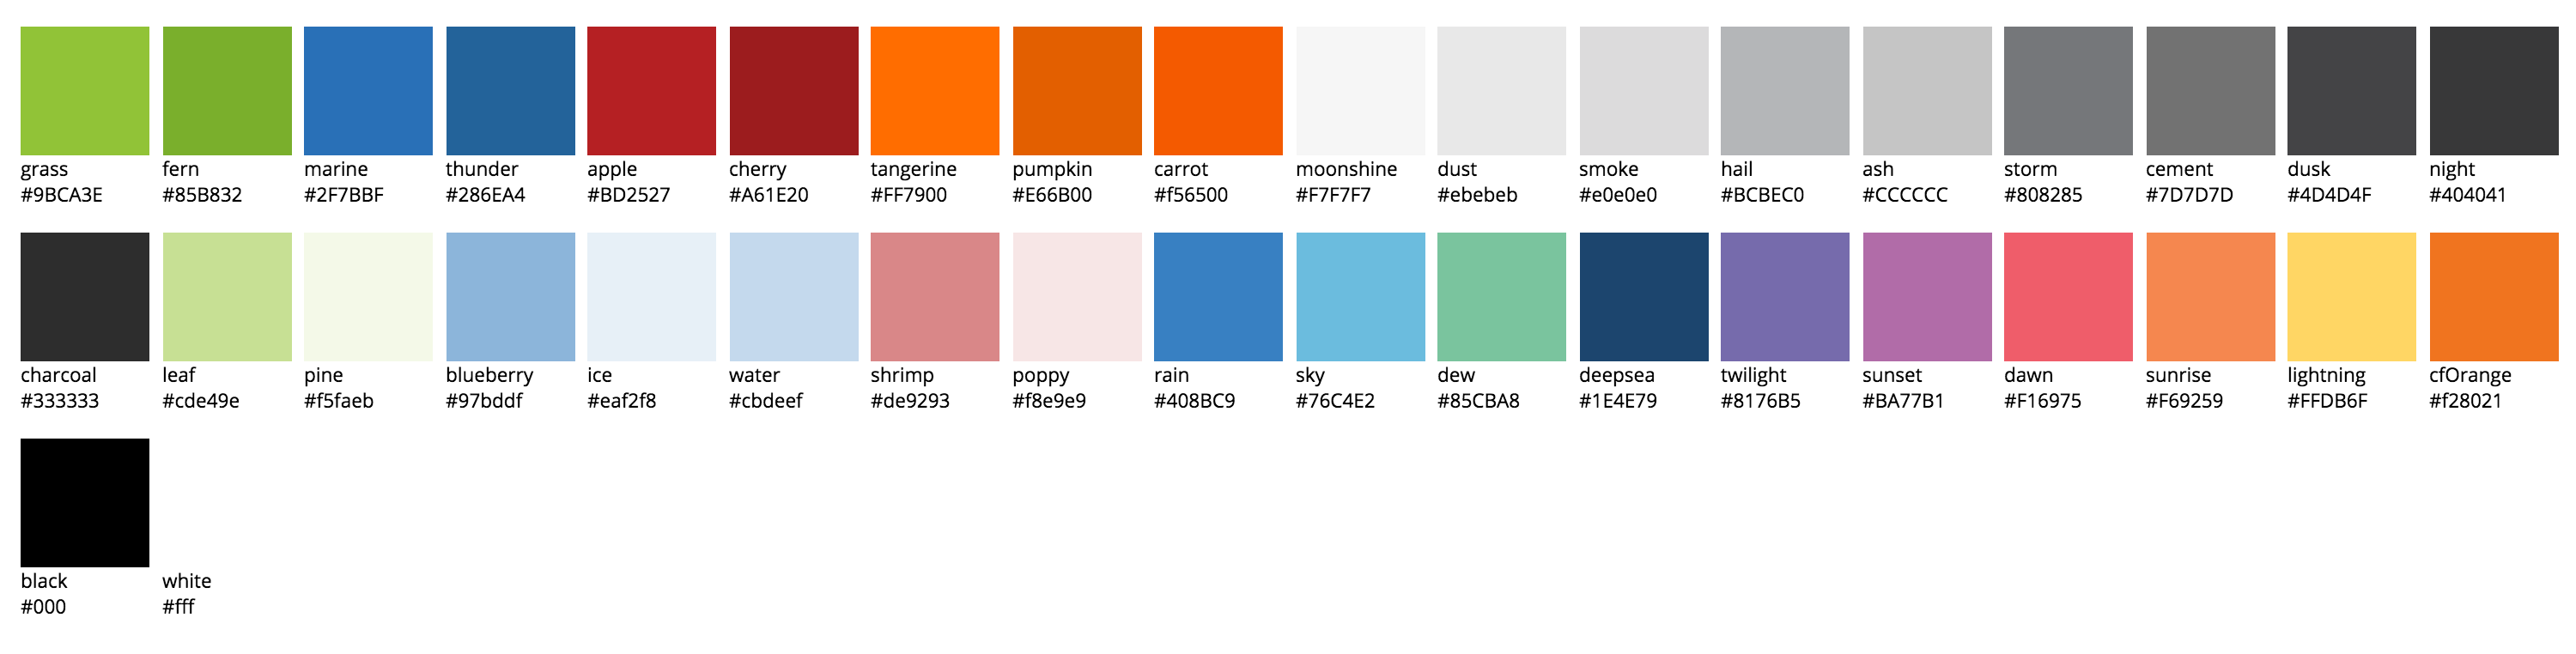 The color section of our theme file was partially ordered chronologically